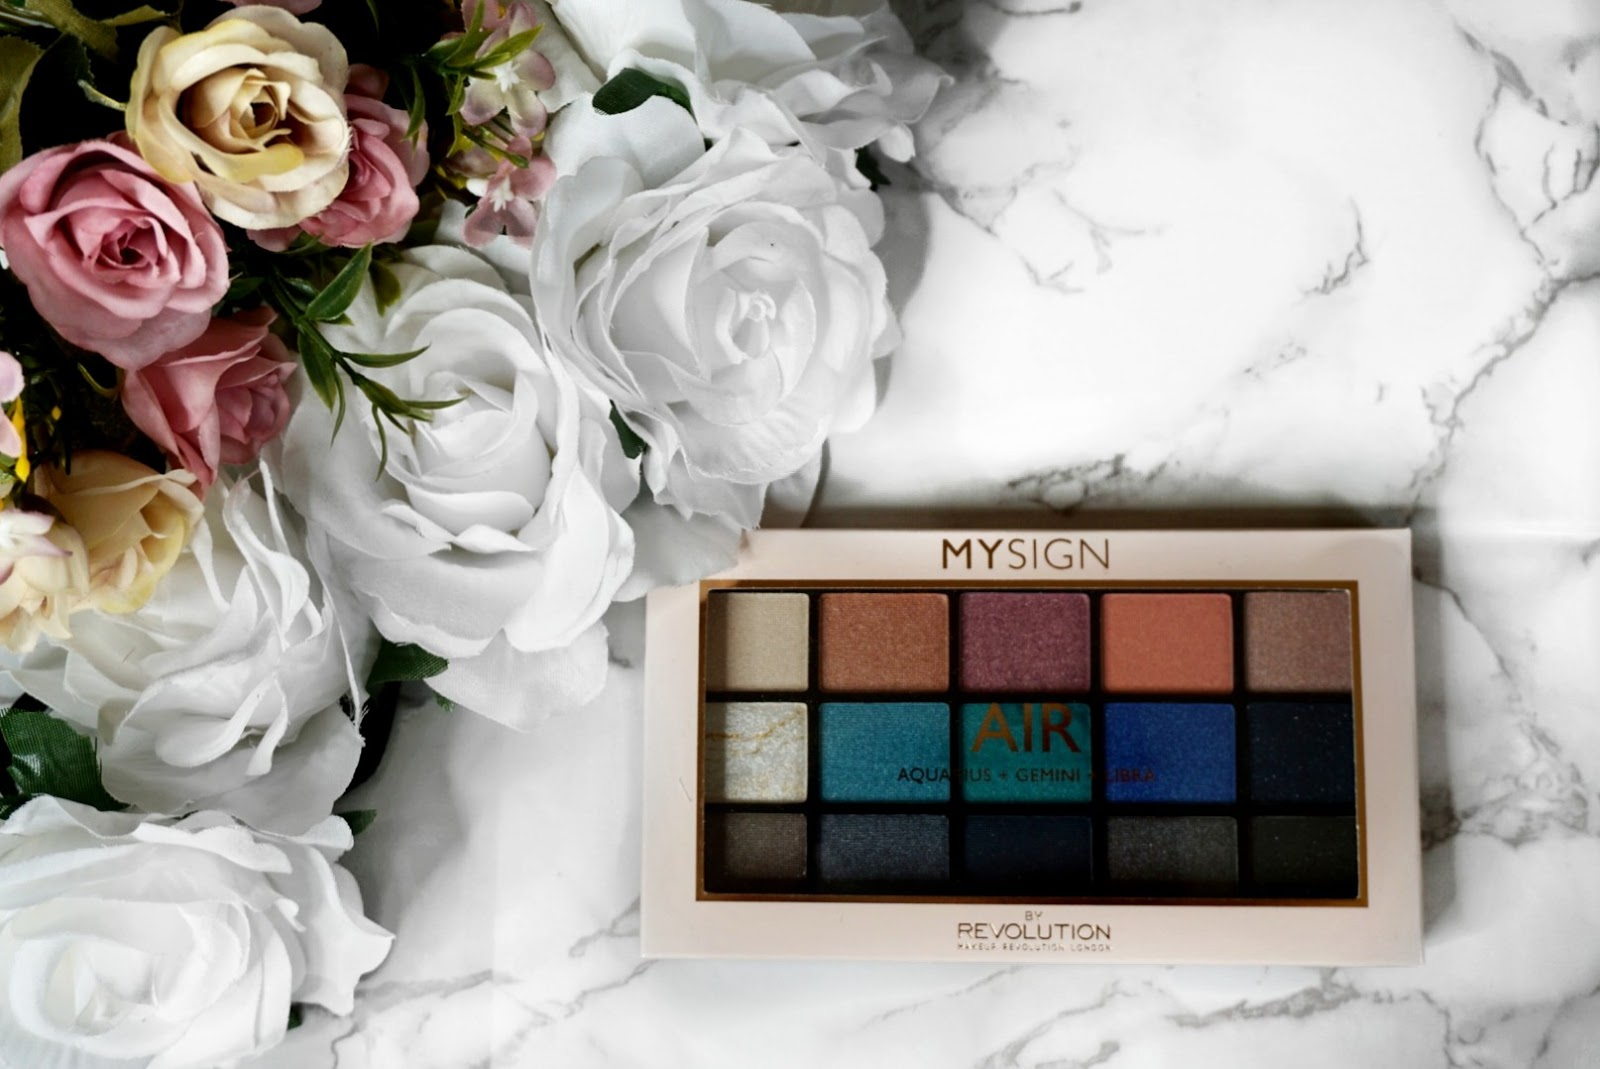 THE AIR SIGN EYESHADOW PALETTE BY MAKEUP REVOLUTION - A KKW X MARIO PALETTE DUPE